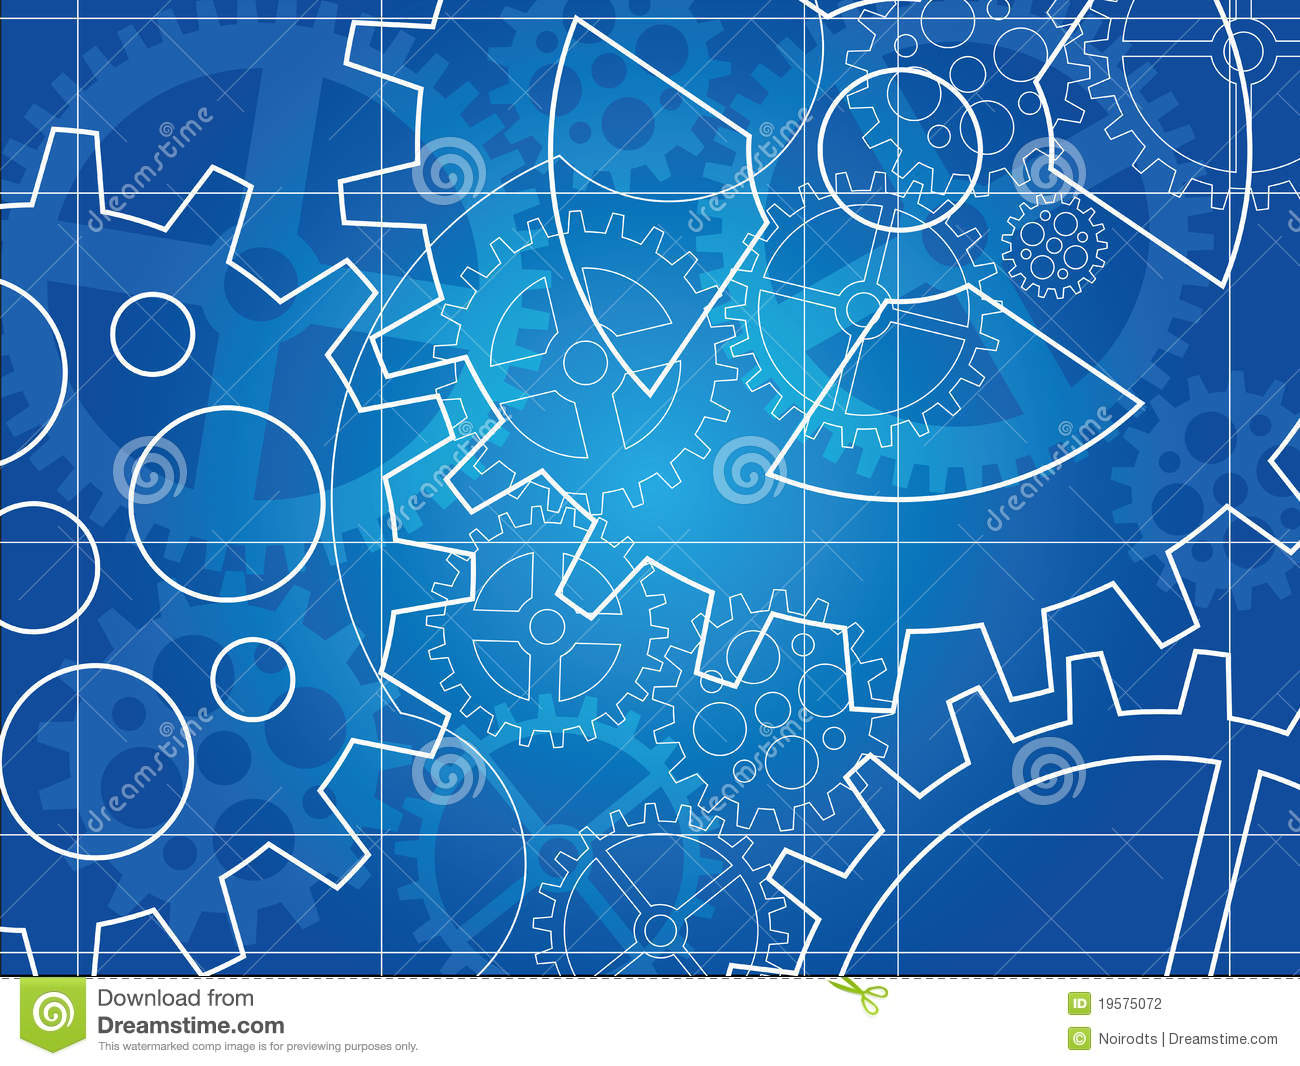 Gear Blueprint Abstract Design Stock Photography   Image  19575072